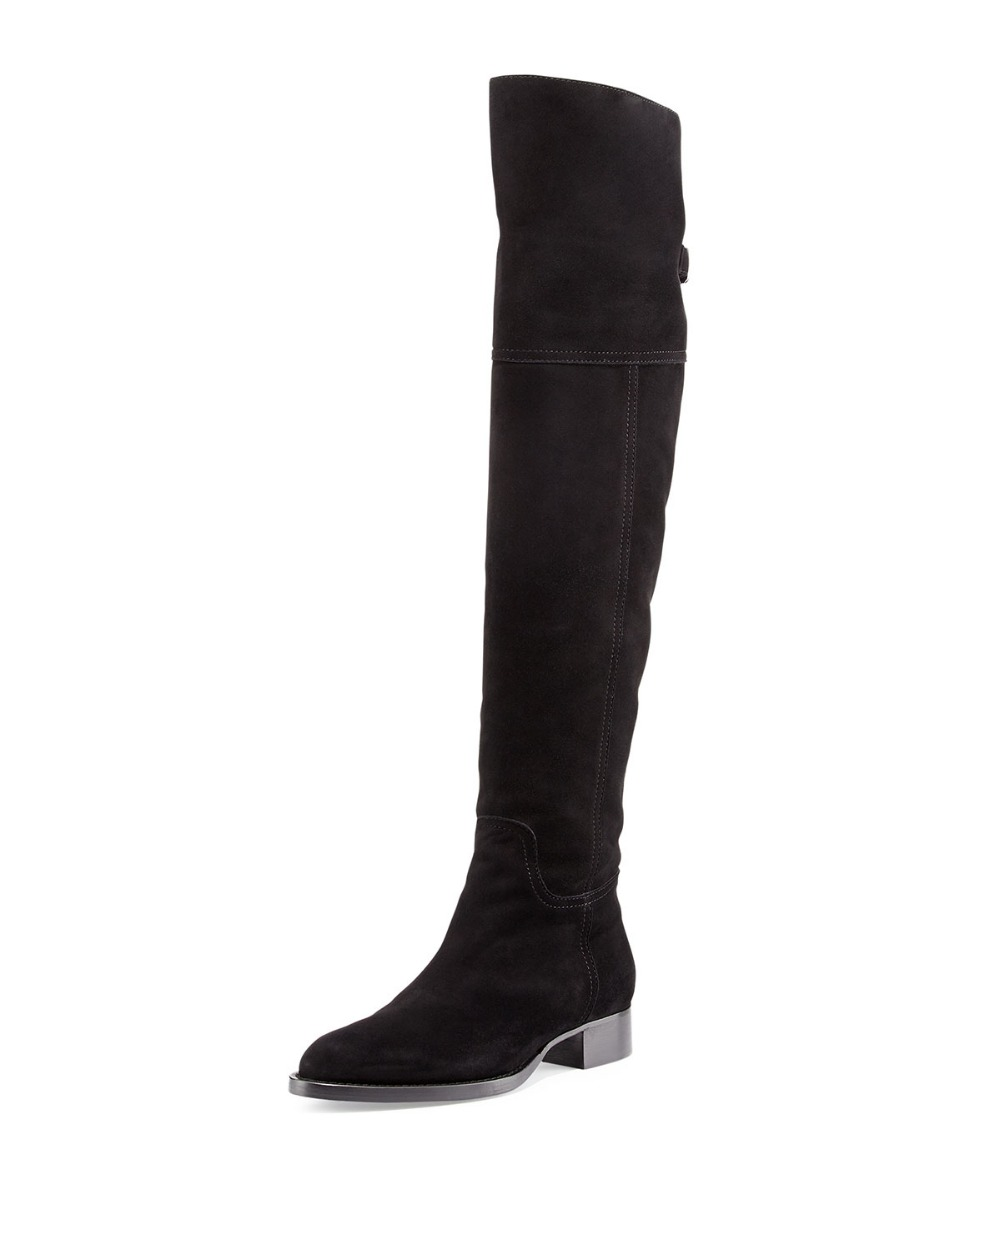 New Fashion Women Over-knee Boots High-quality Flock Round Toe 2.5cm Square Heels Boots Black Customizable Shoes Woman Plus Size